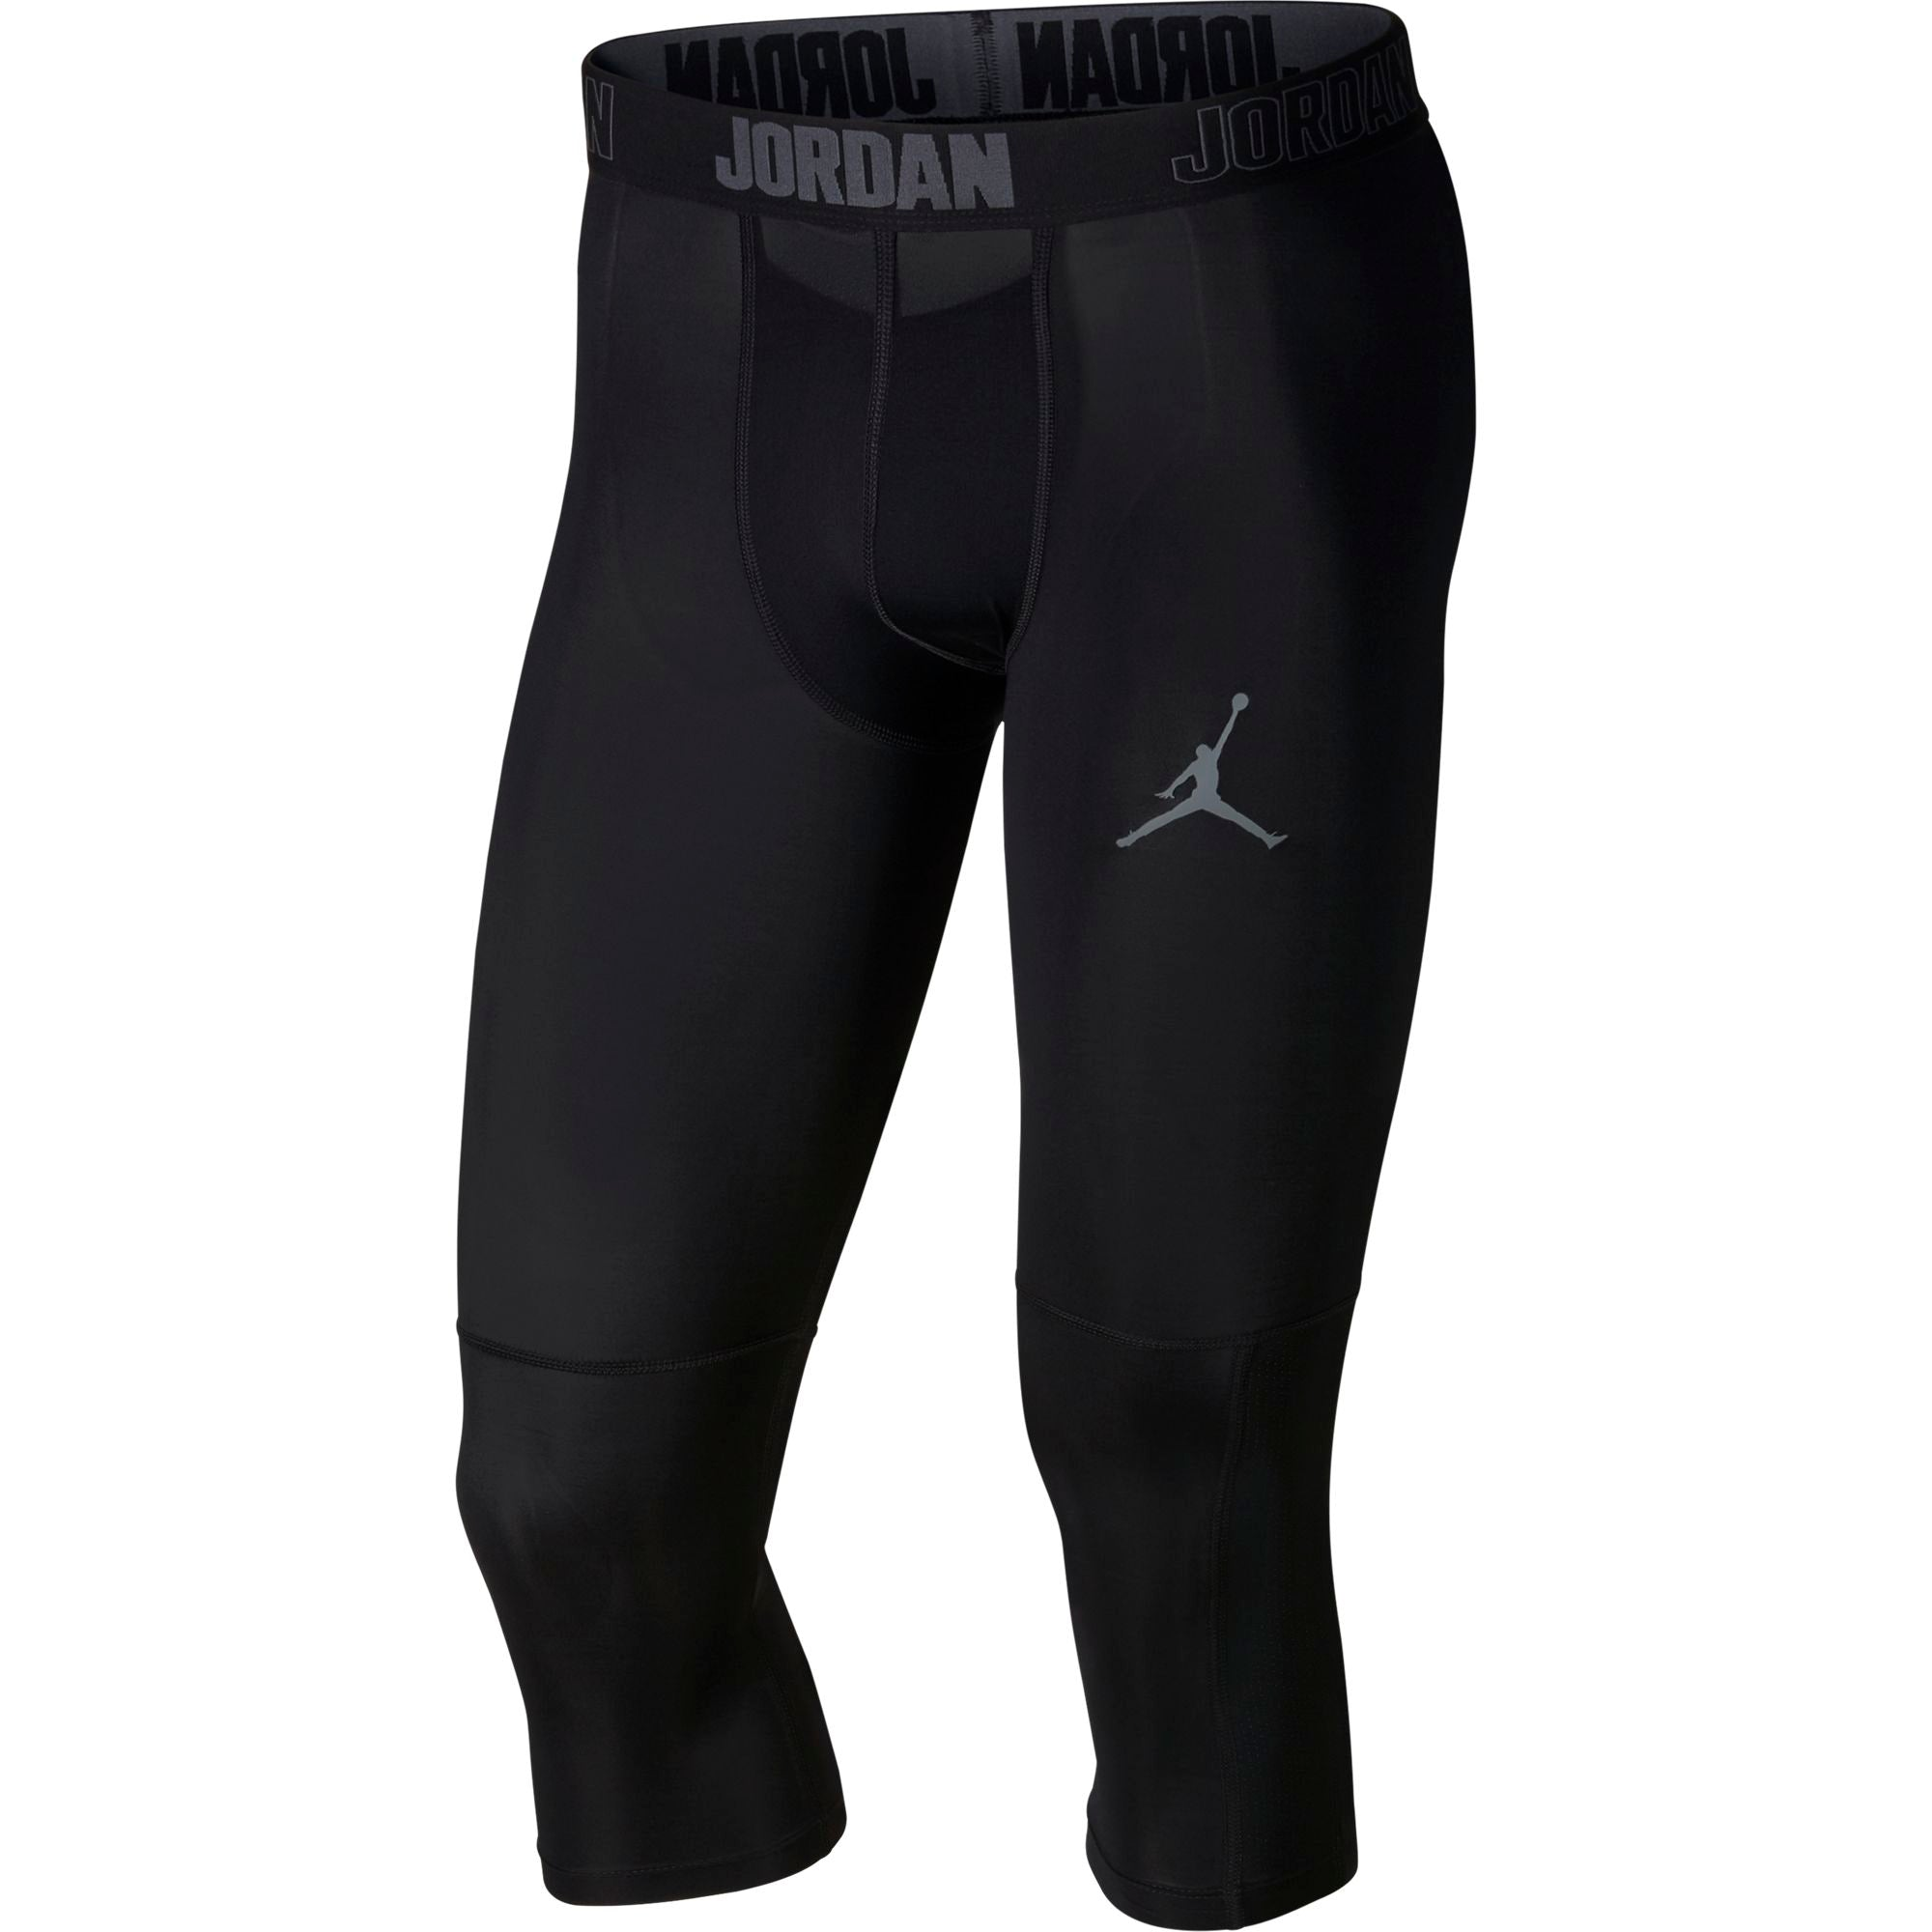 Nike Jordan Dry 23 Alpha 3/4 Training Tights - NK-892246-010